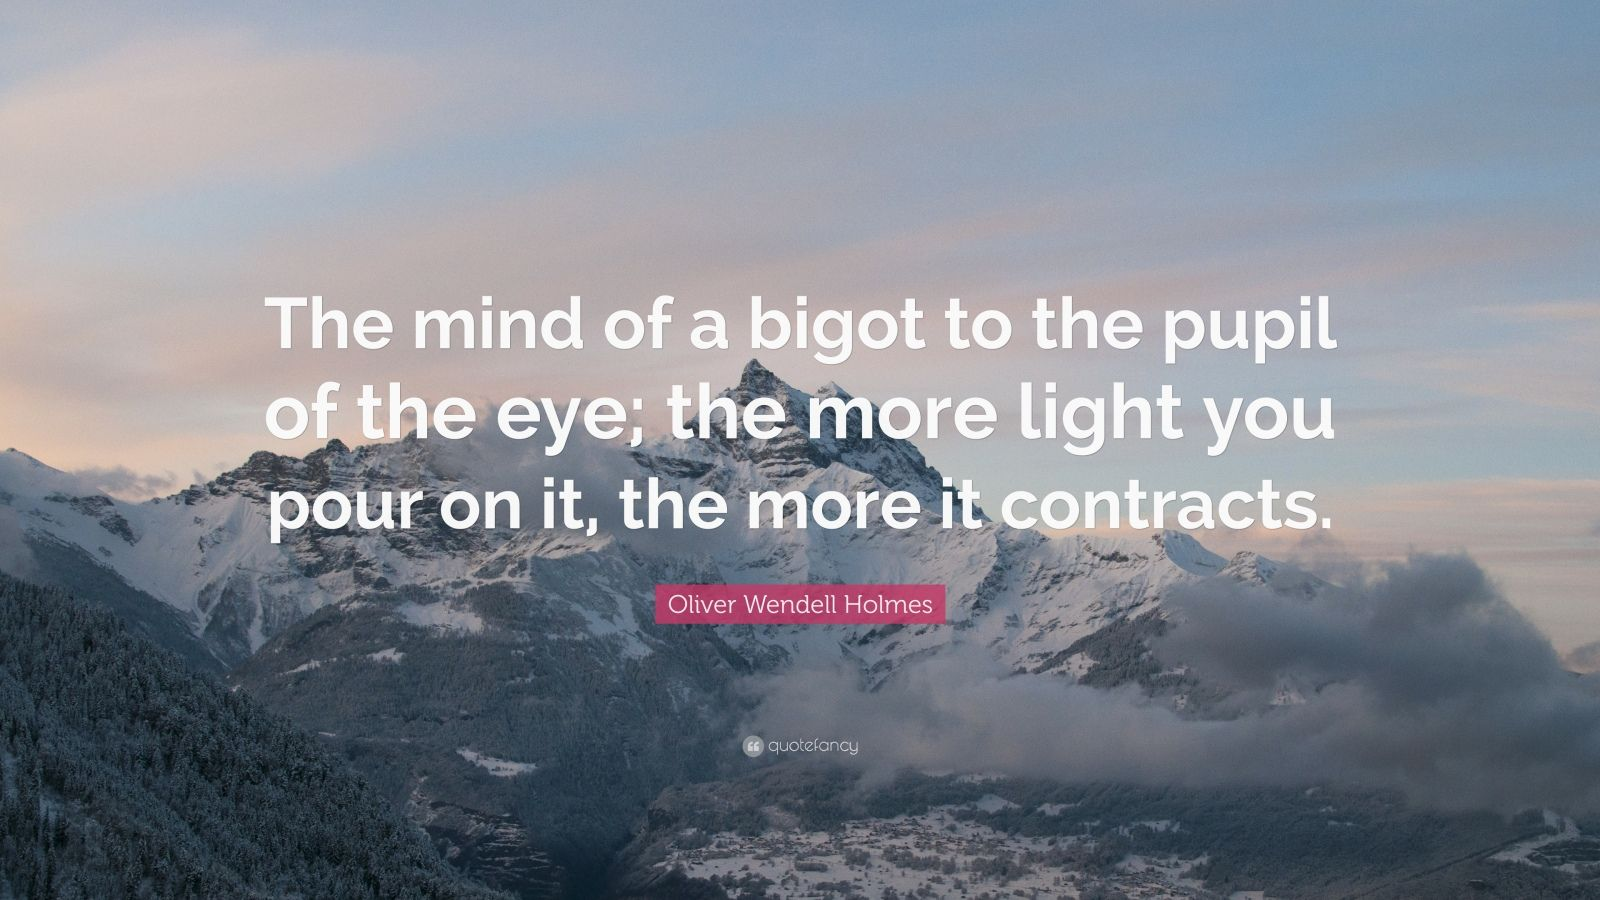 """Oliver Wendell Holmes Quote: """"The mind of a bigot to the pupil of the eye; the more light you pour on it, the more it contracts."""""""